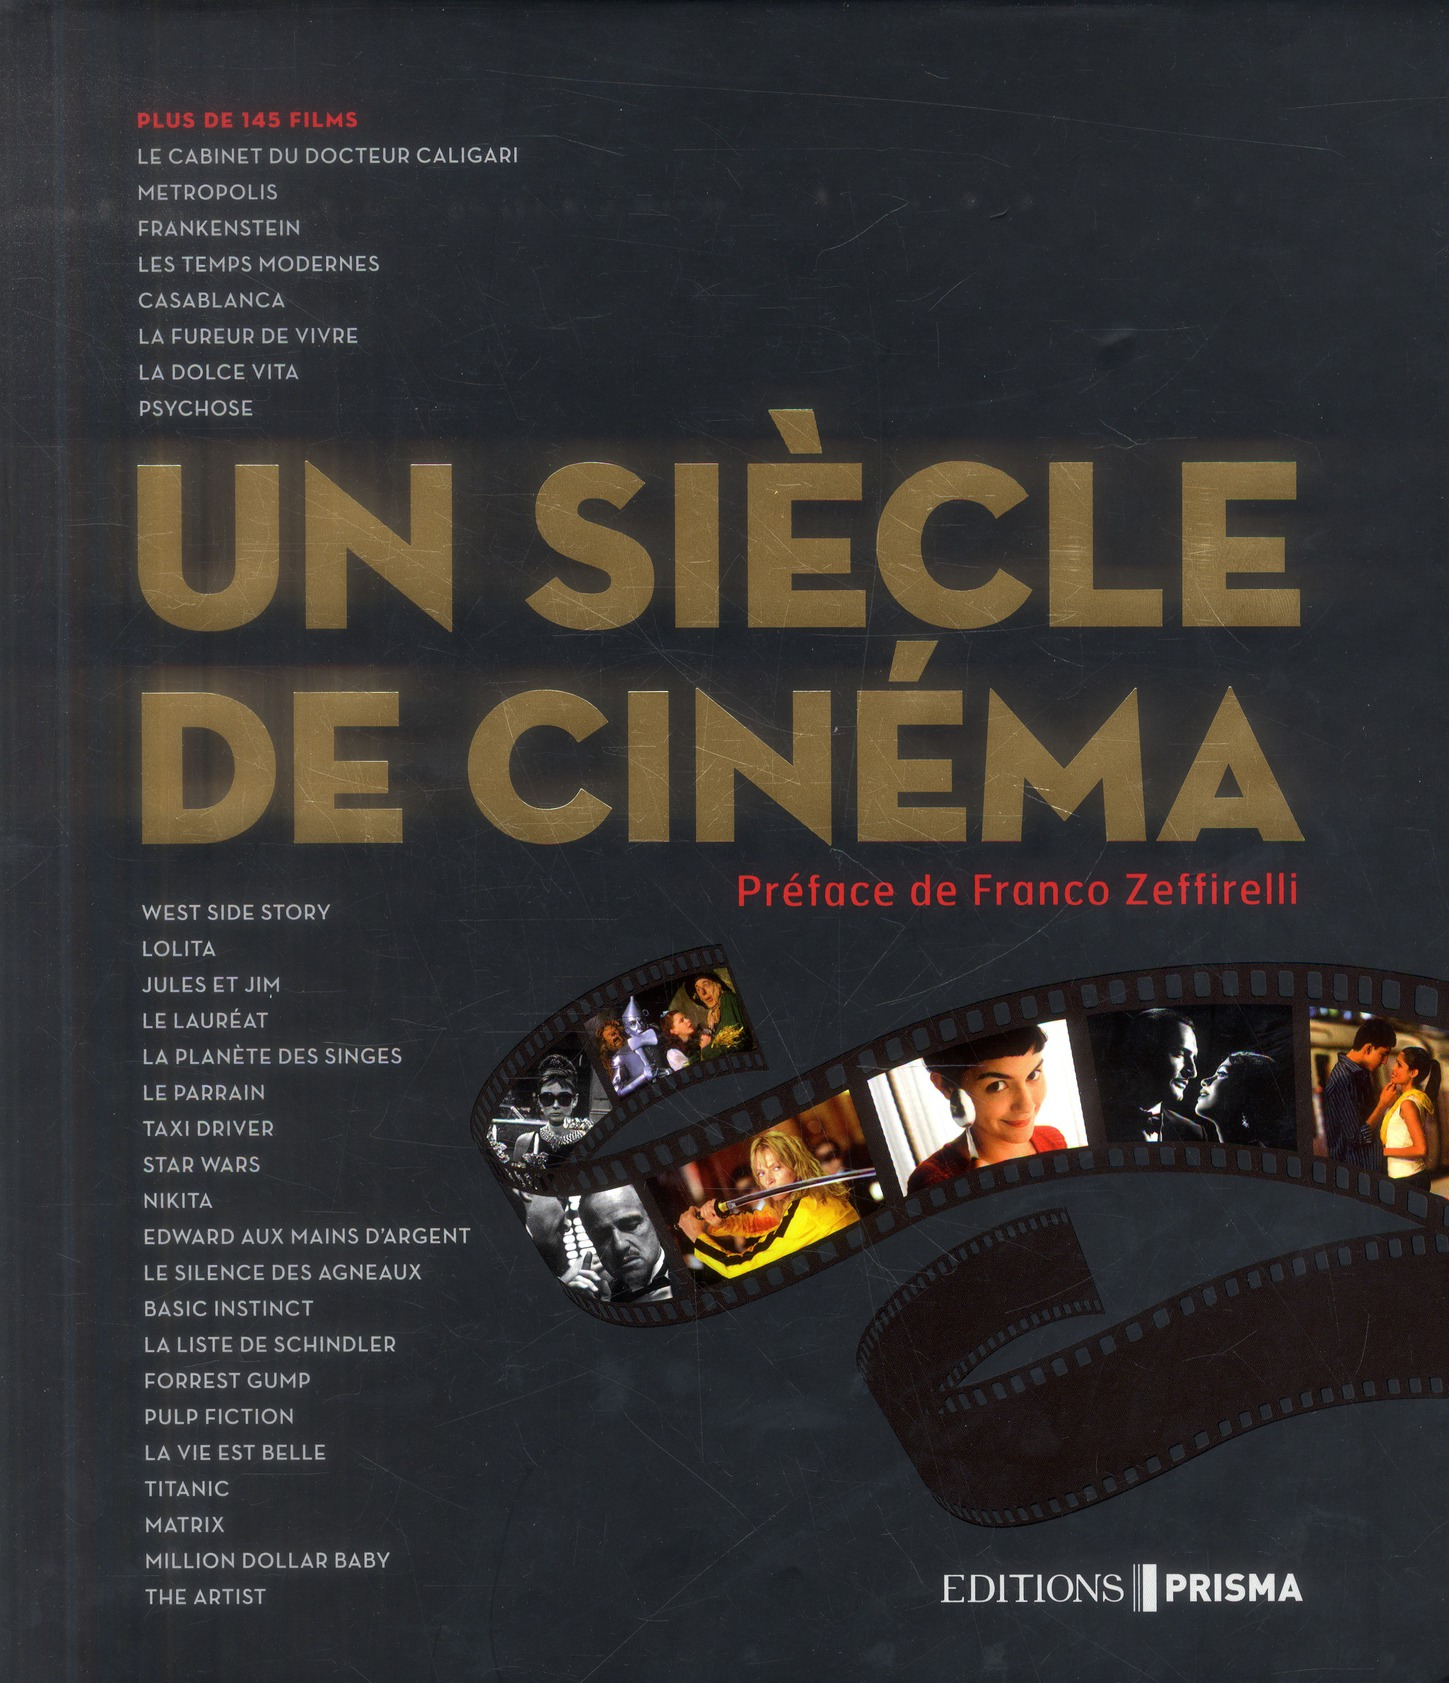 UN SIECLE DE CINEMA